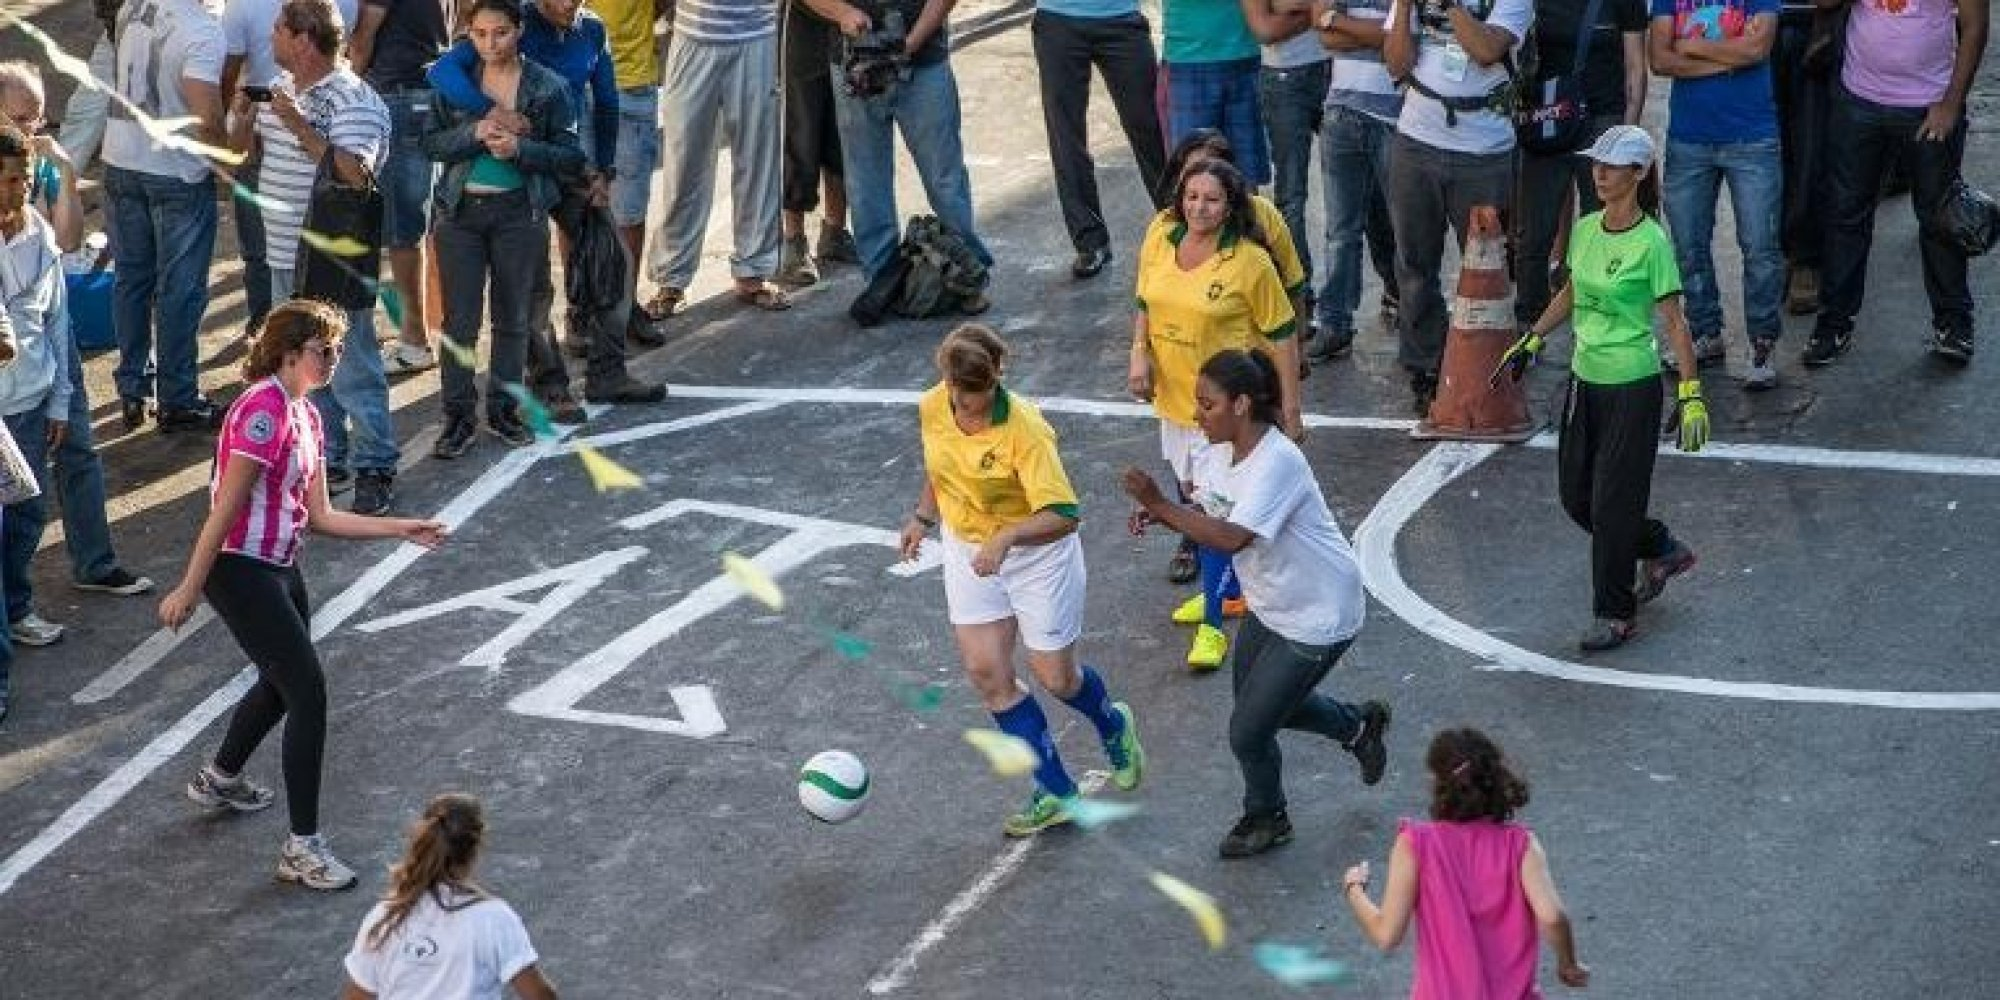 World Cup 2014: Naked Prostitutes Play Football To Raise